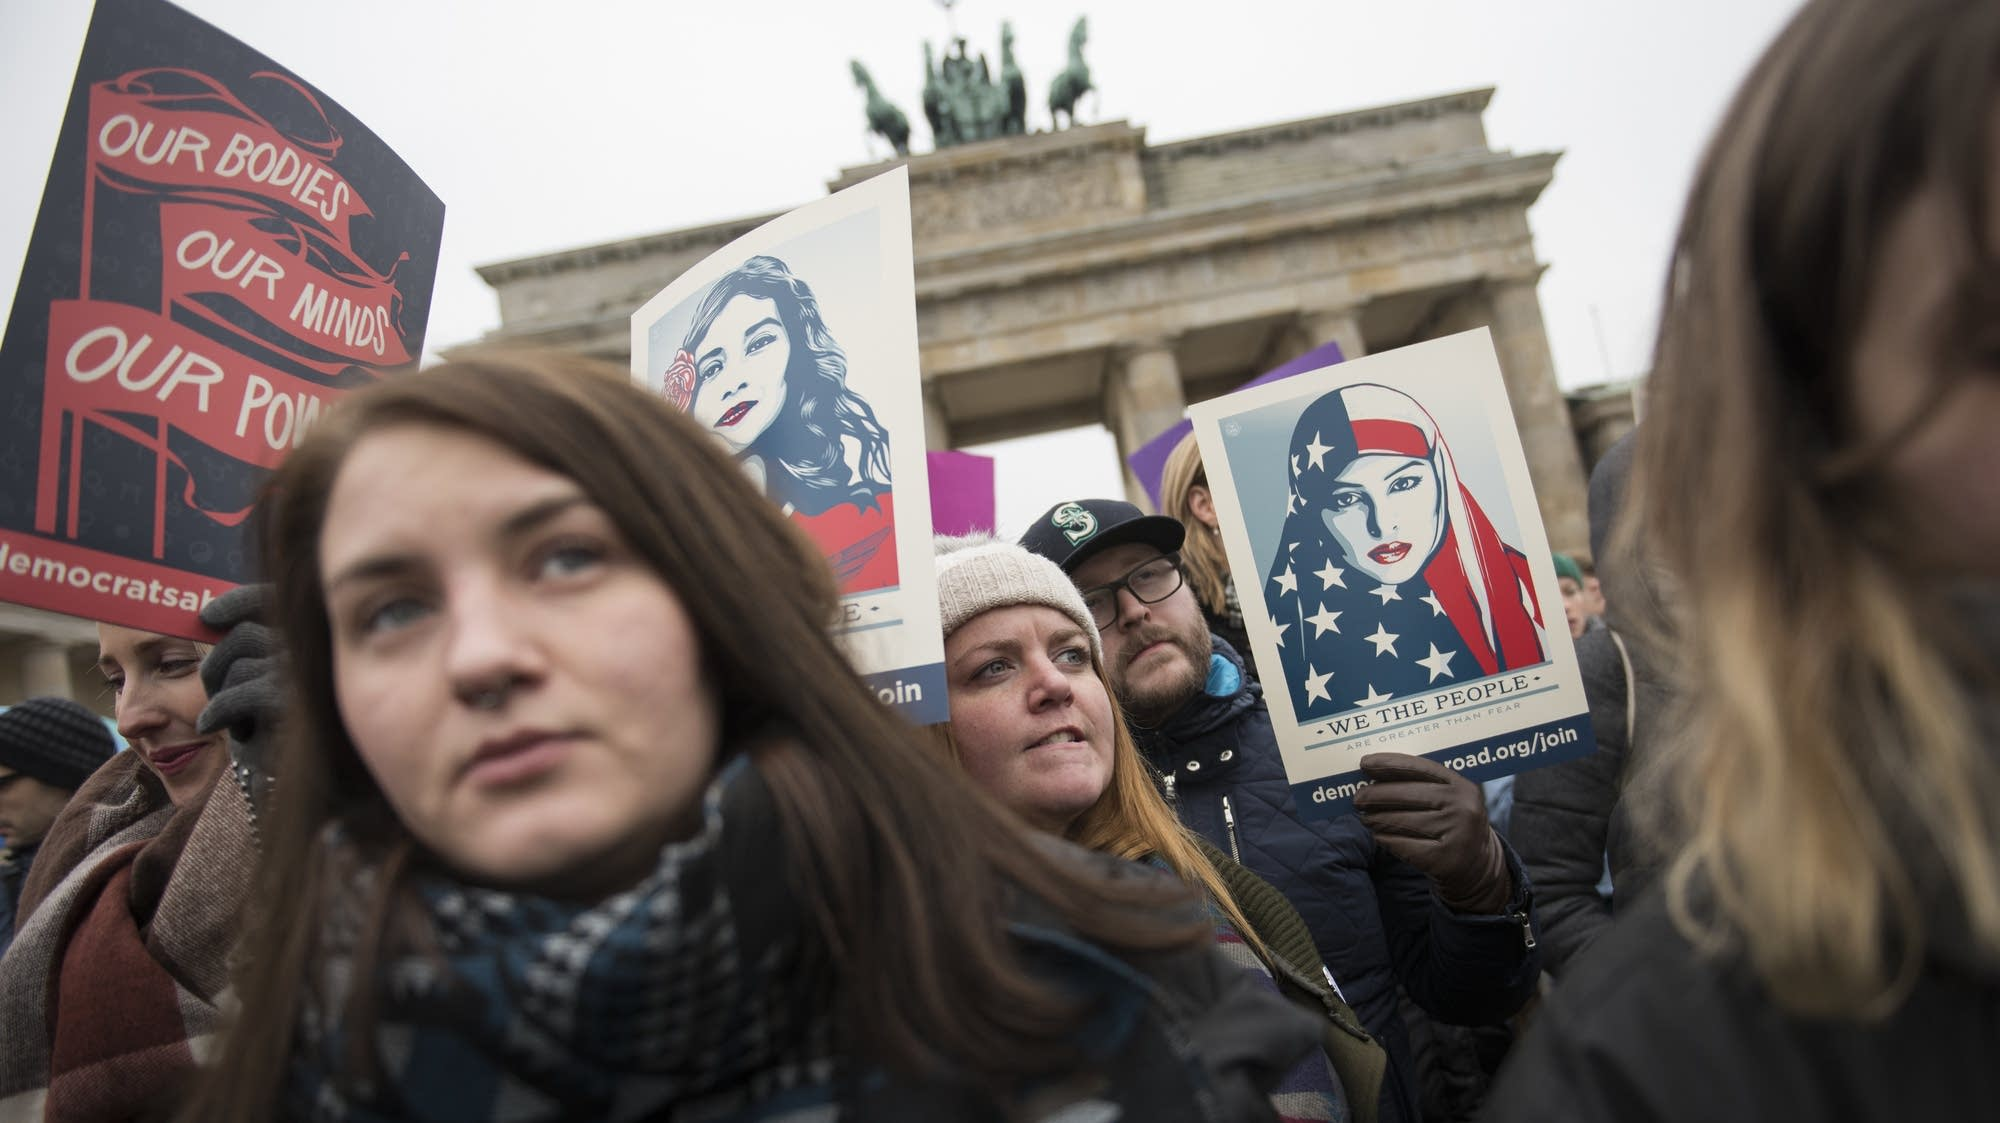 Berlin, Germany: March in solidarity with the Women's March on Wash.